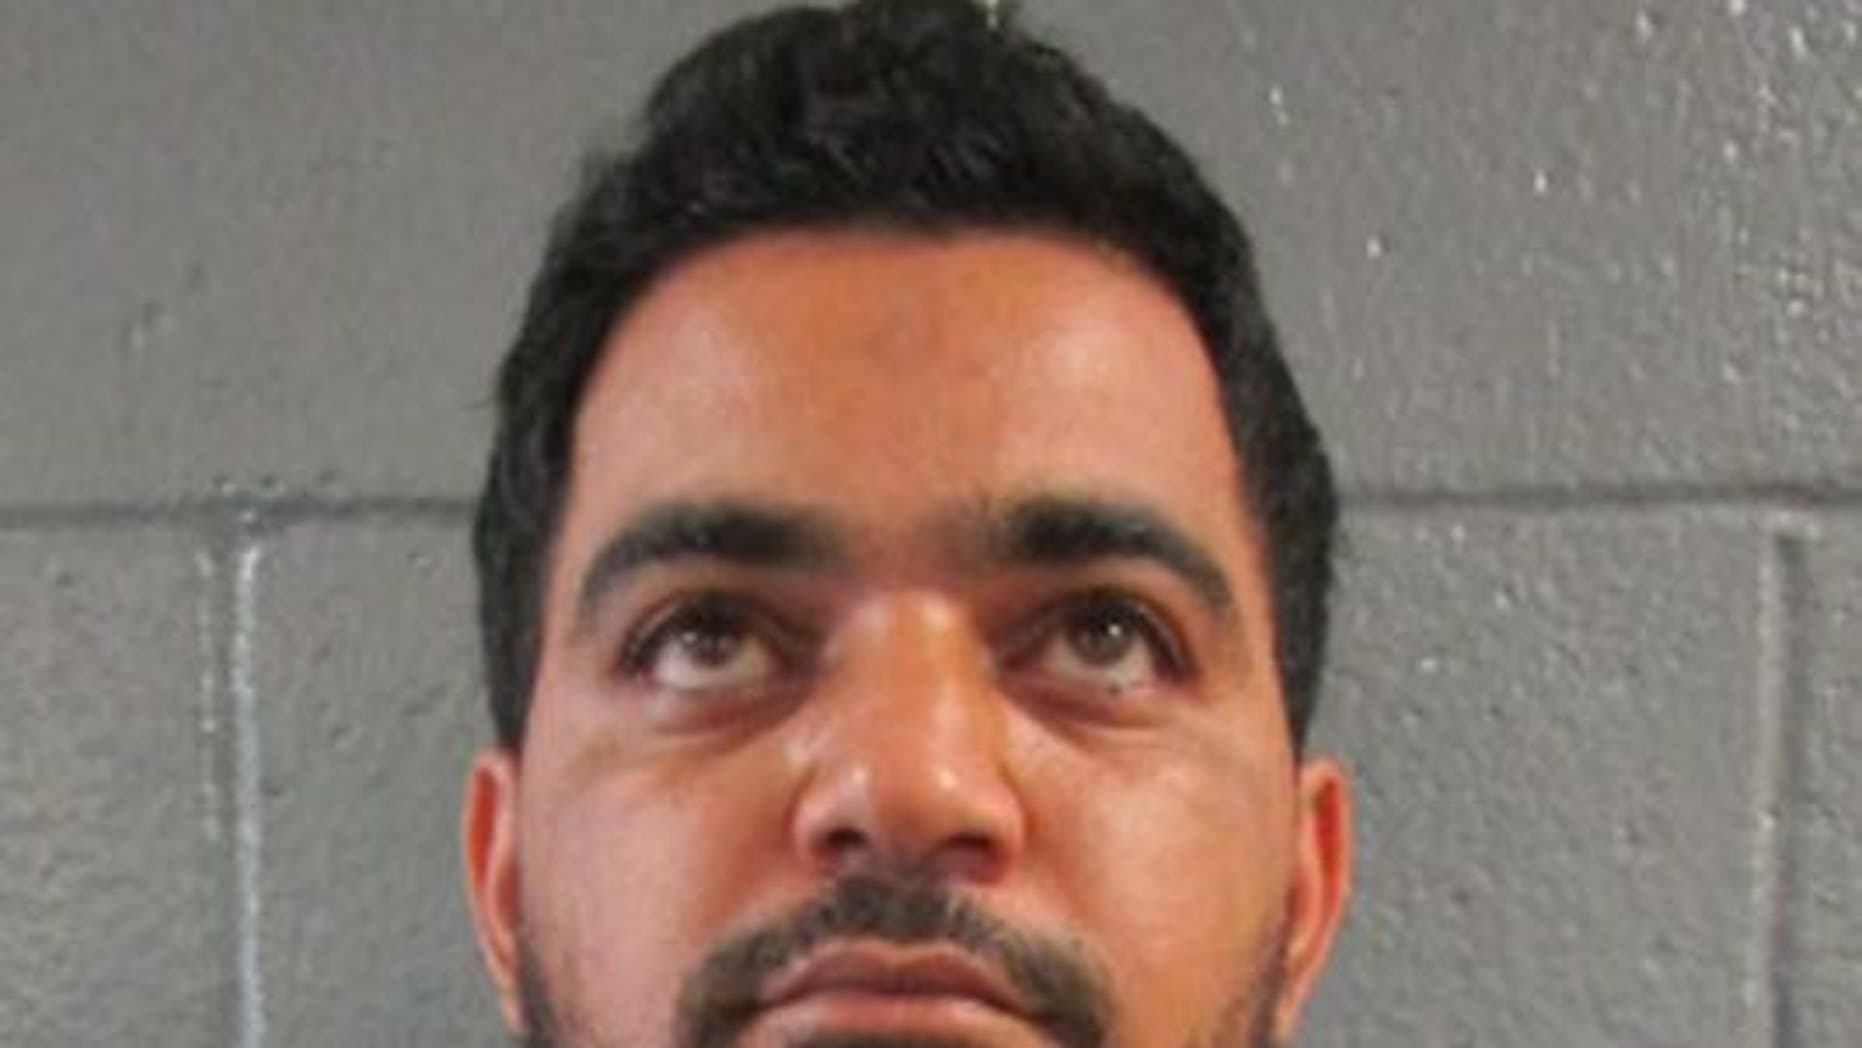 Ahmad Suhad Admad, 30, was arrested Friday for allegedly instructing undercover FBI agents and informants how to build bombs.